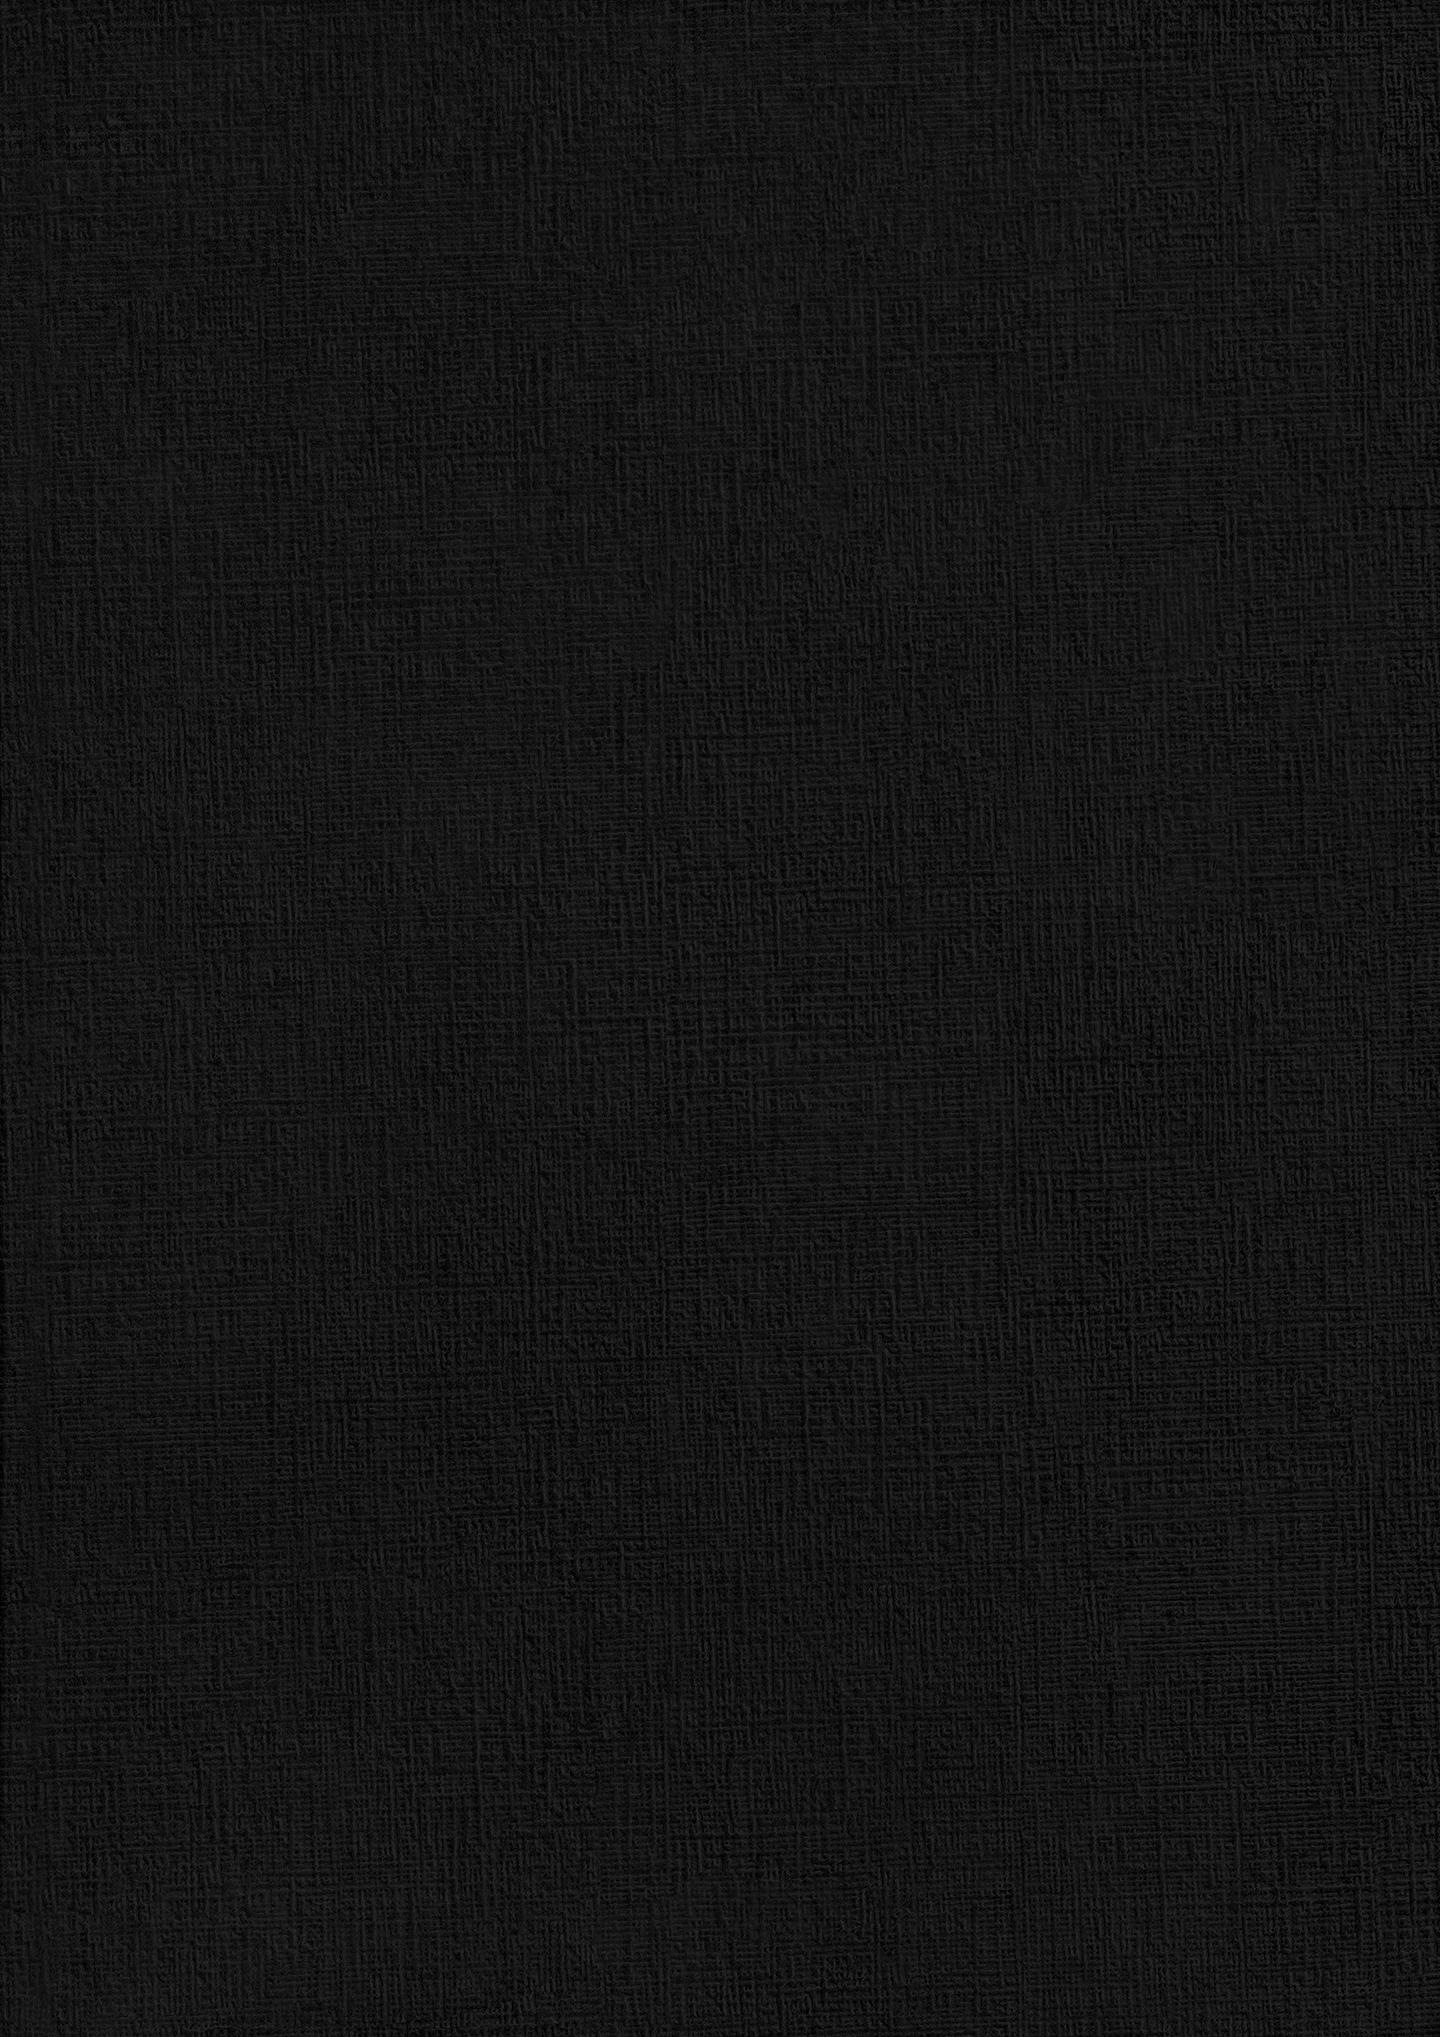 26 Black Paper Background Textures ~ Textures.World